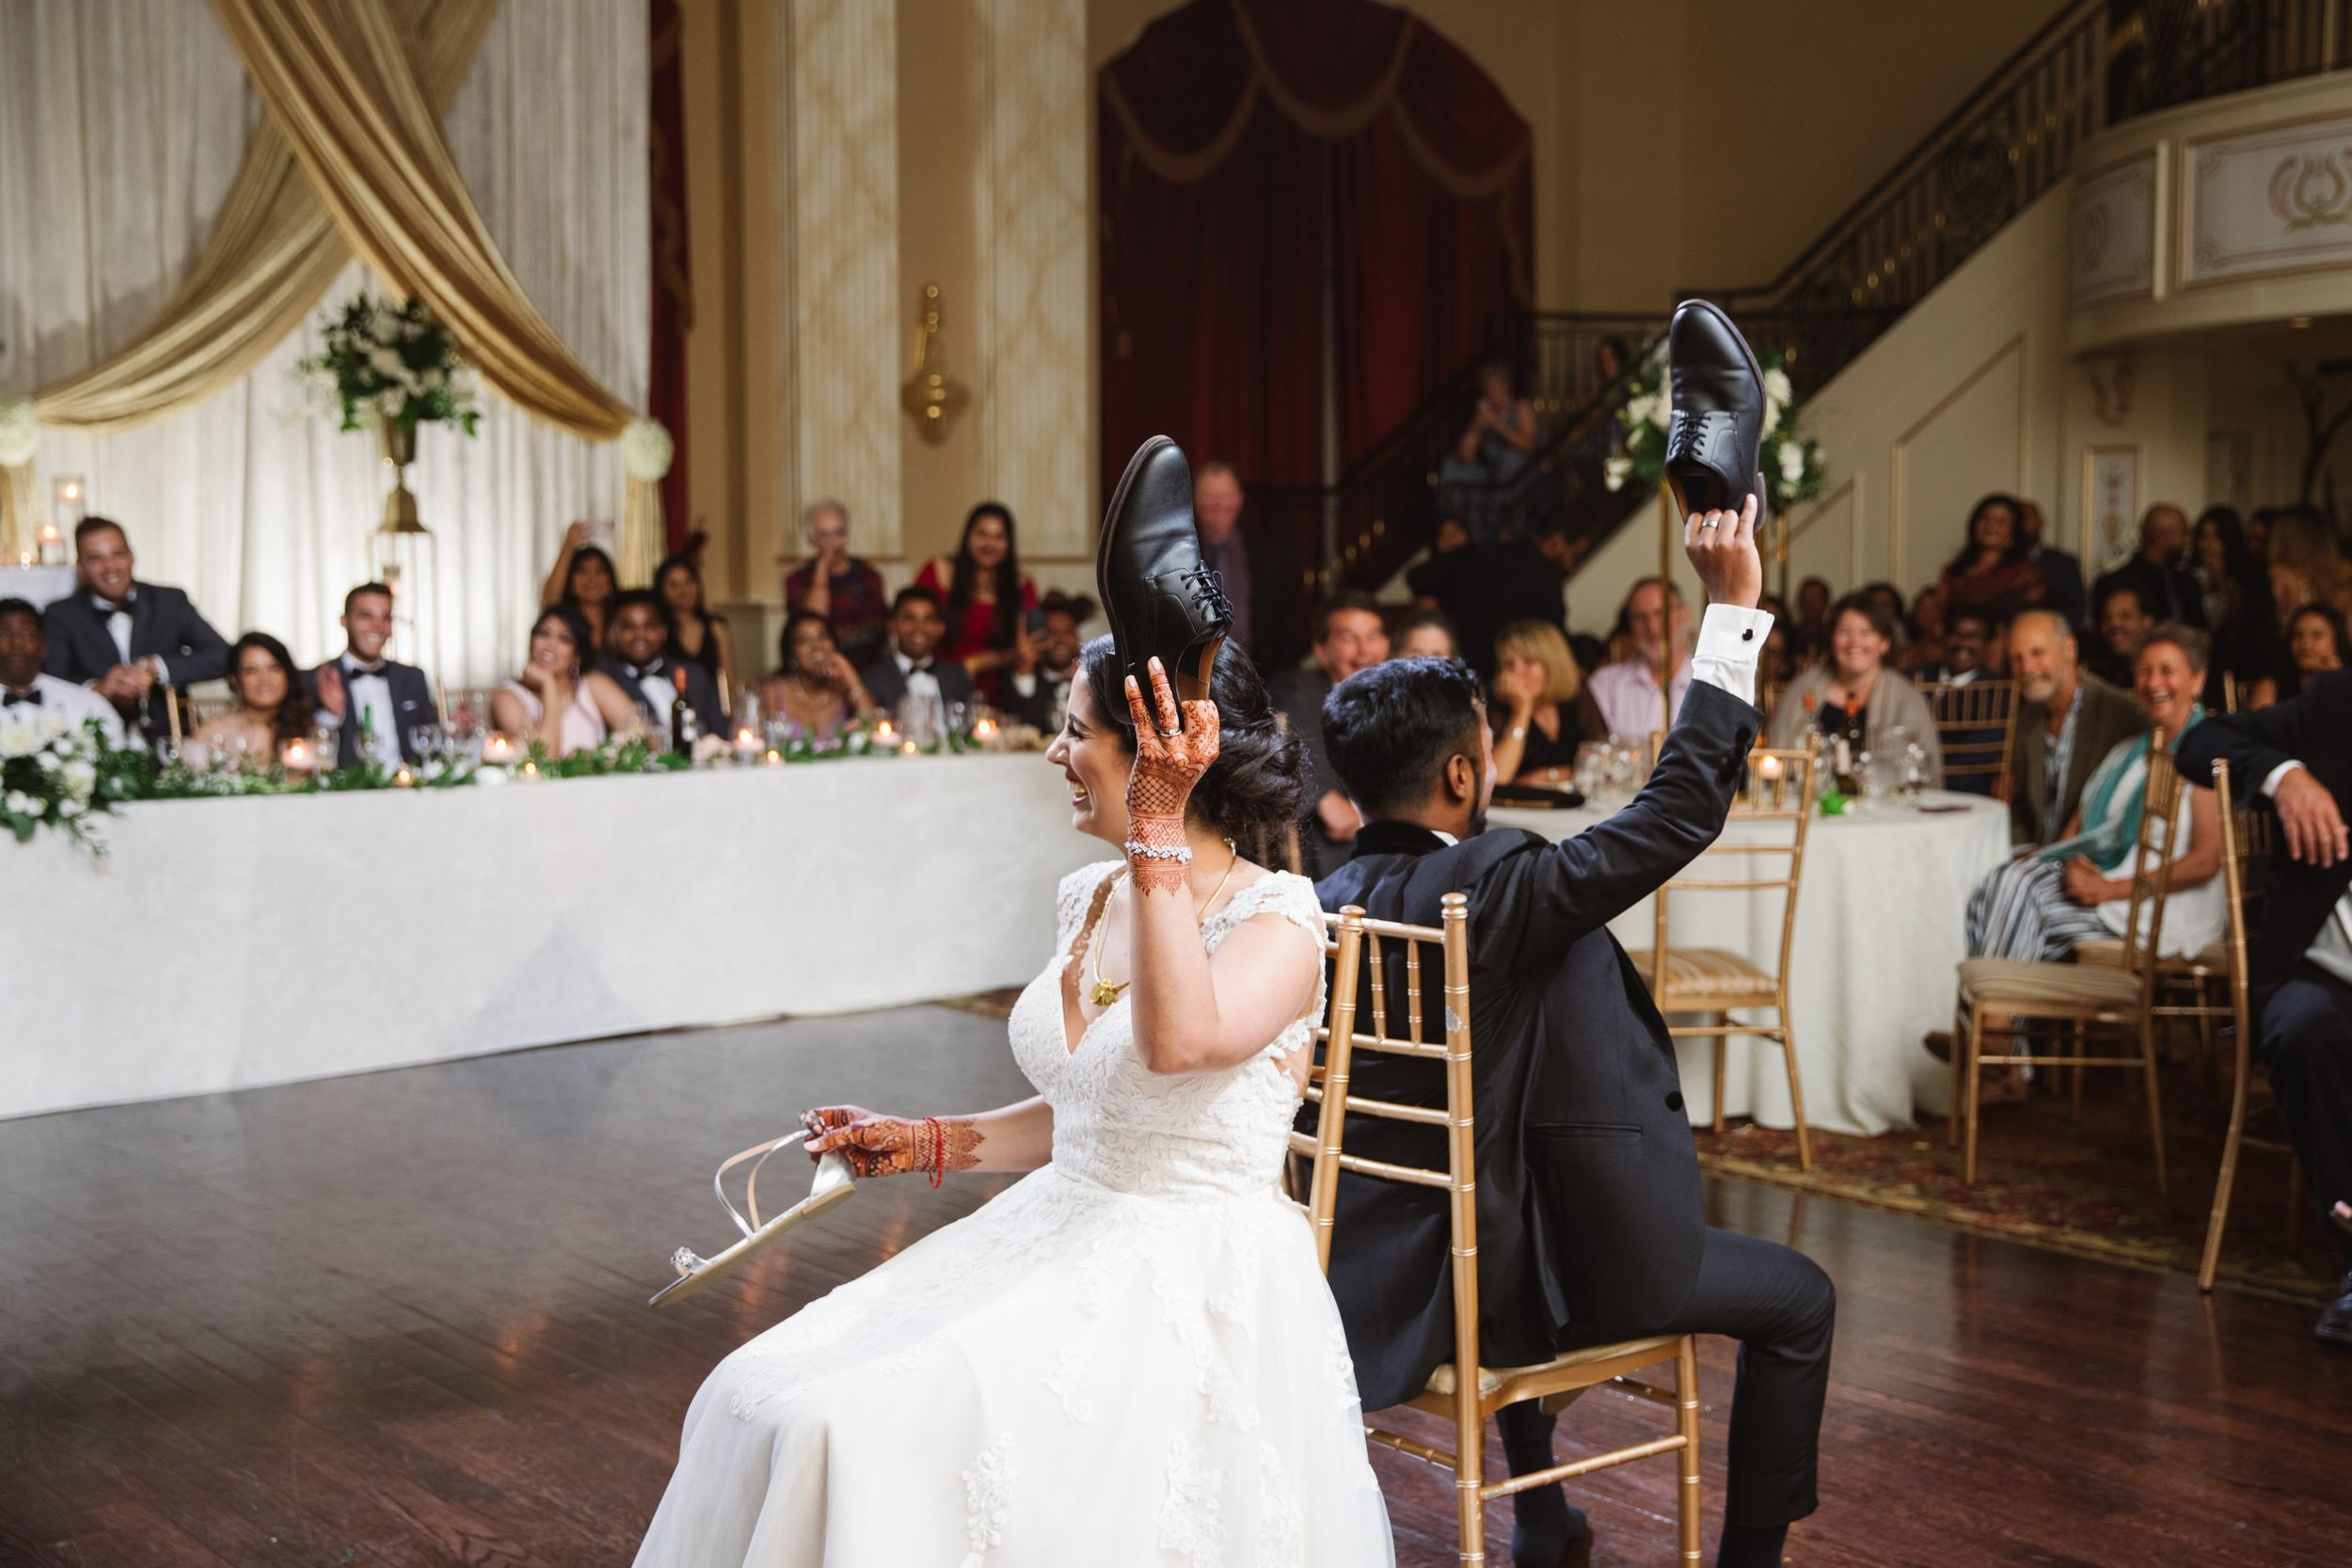 bride and groom shoe game holding up shoes during wedding reception